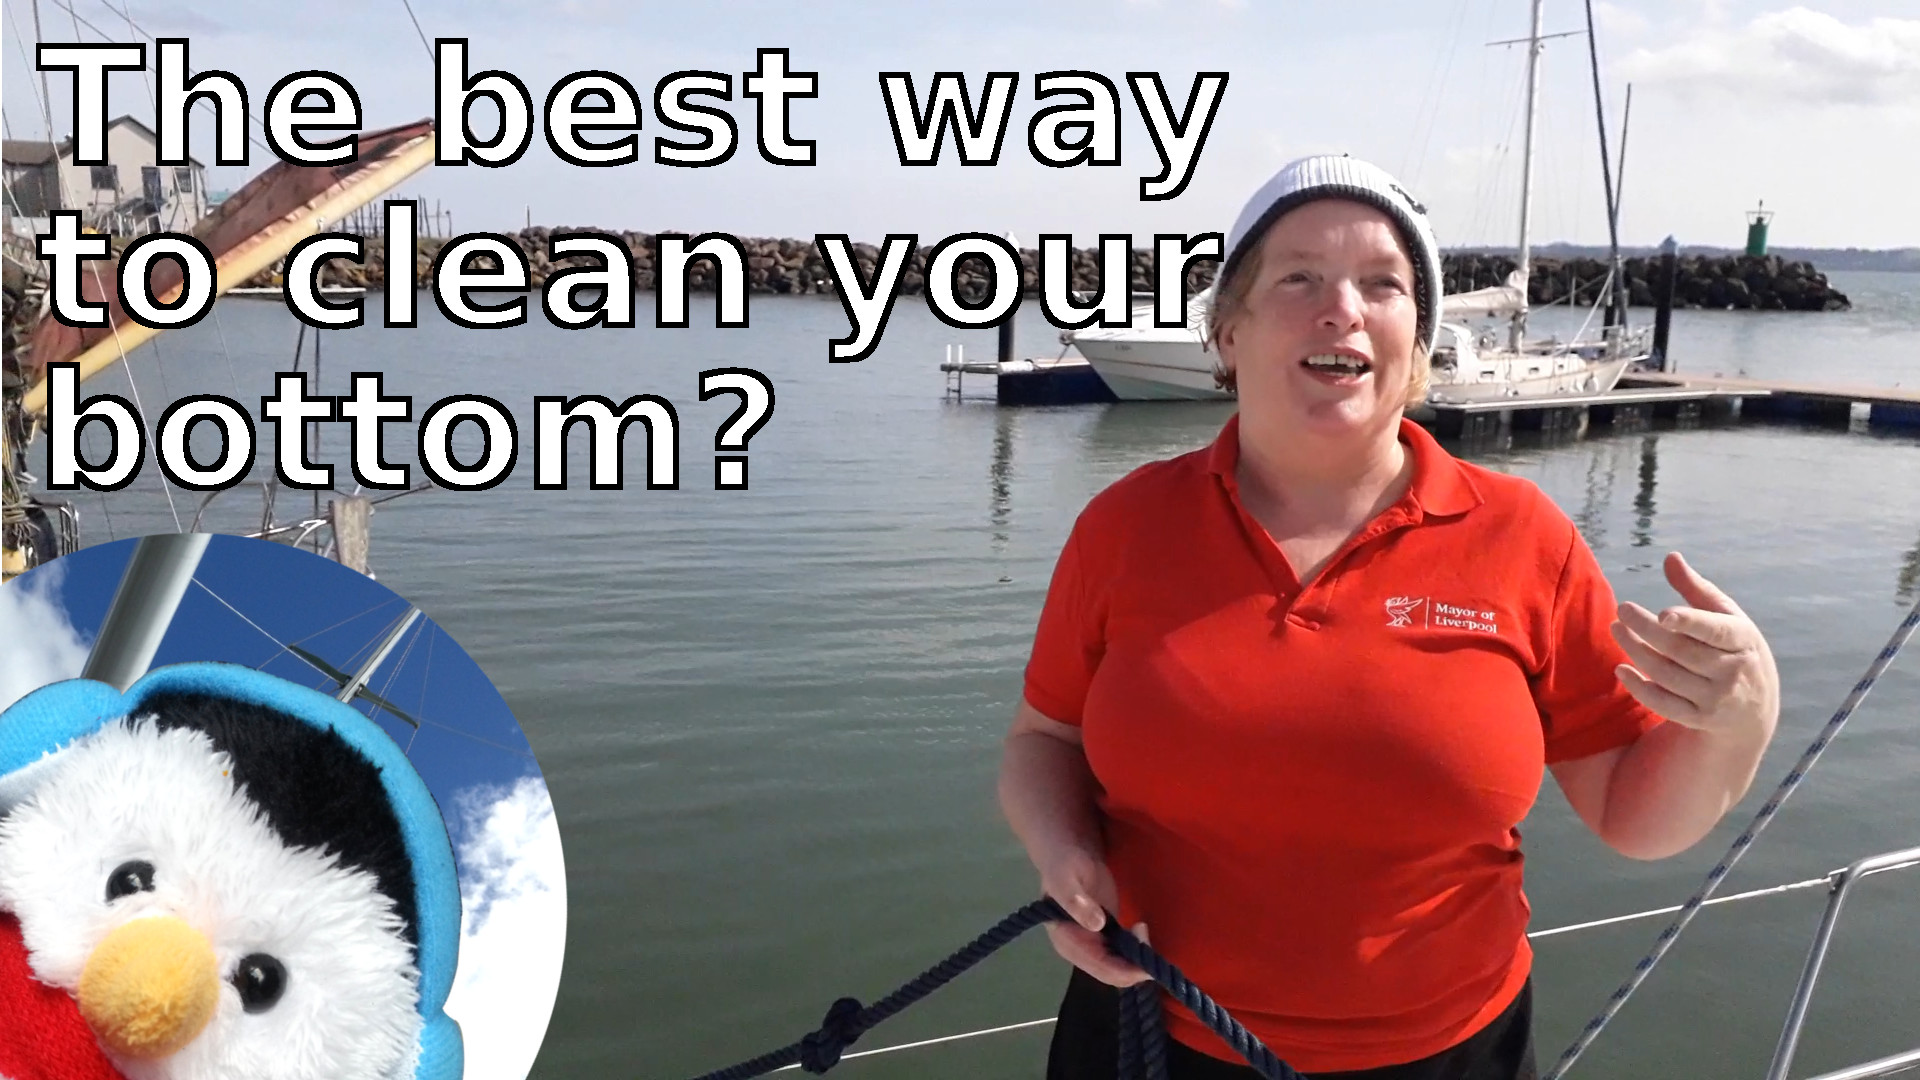 """Watch or """"The best way to clean your bottom"""" video and add comments"""